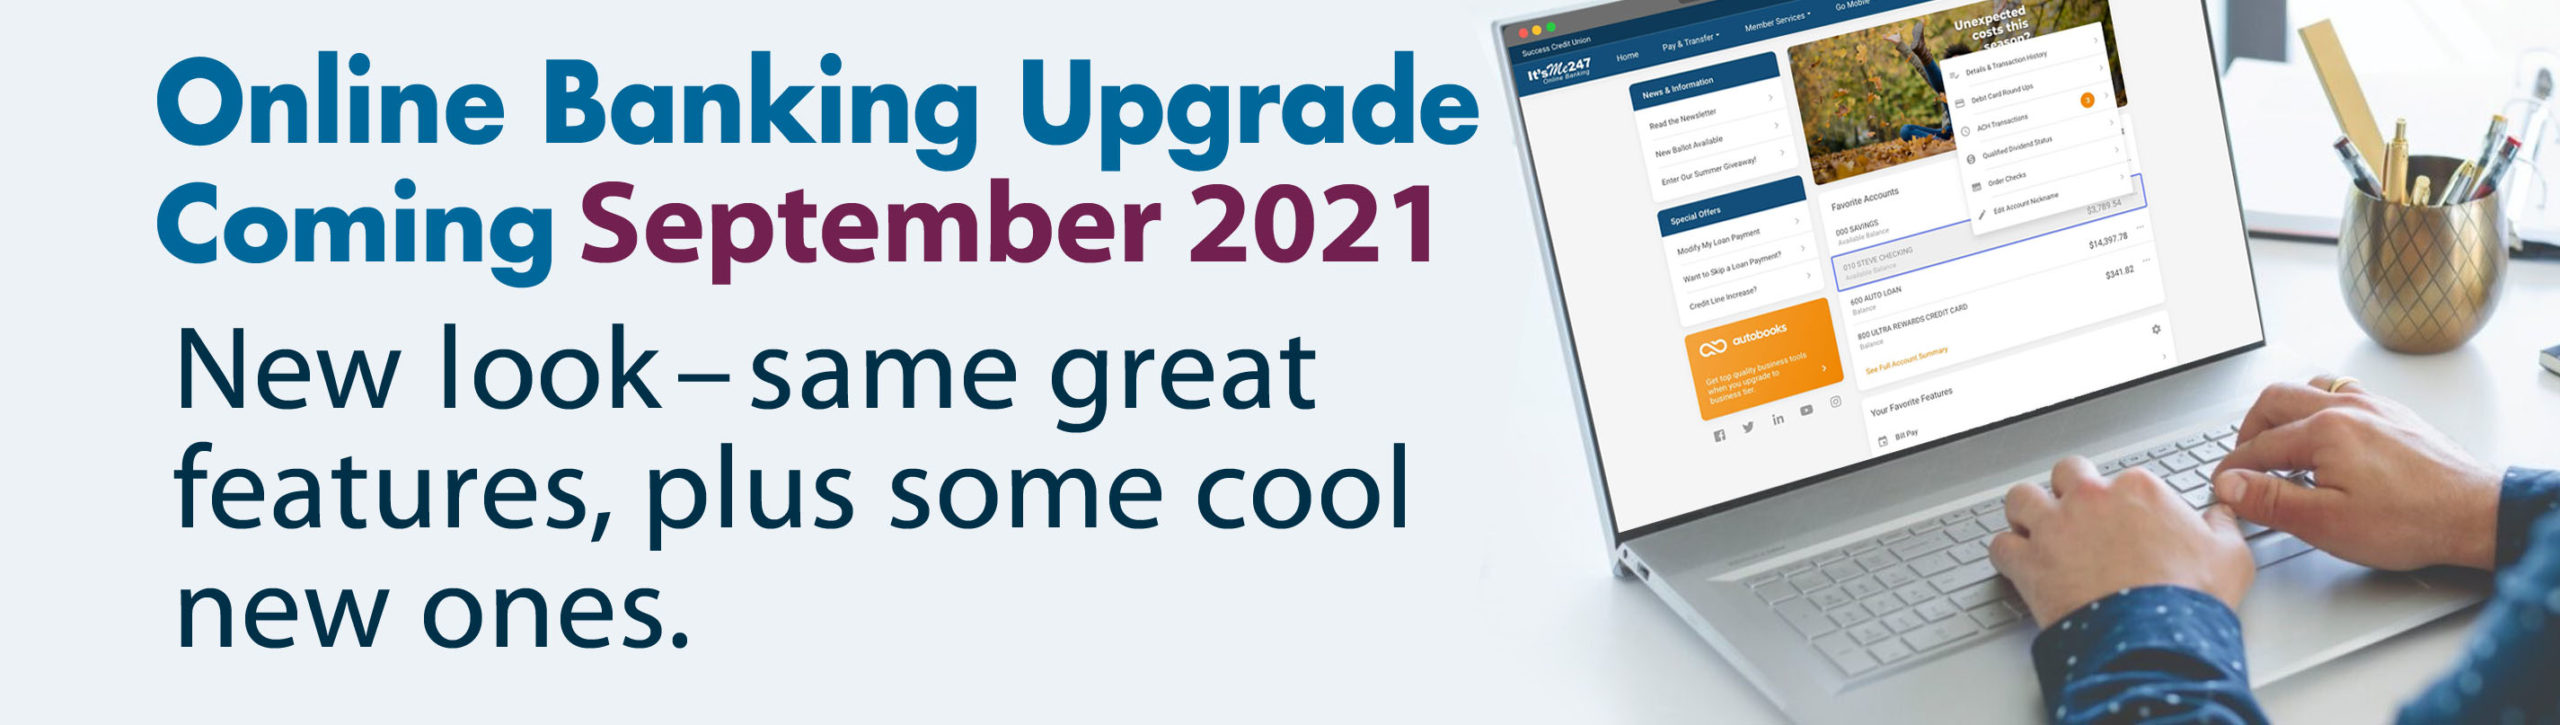 laptop image, online banking. Online Banking upgrade coming September 2021. New look-same great features, plus some cool new ones.